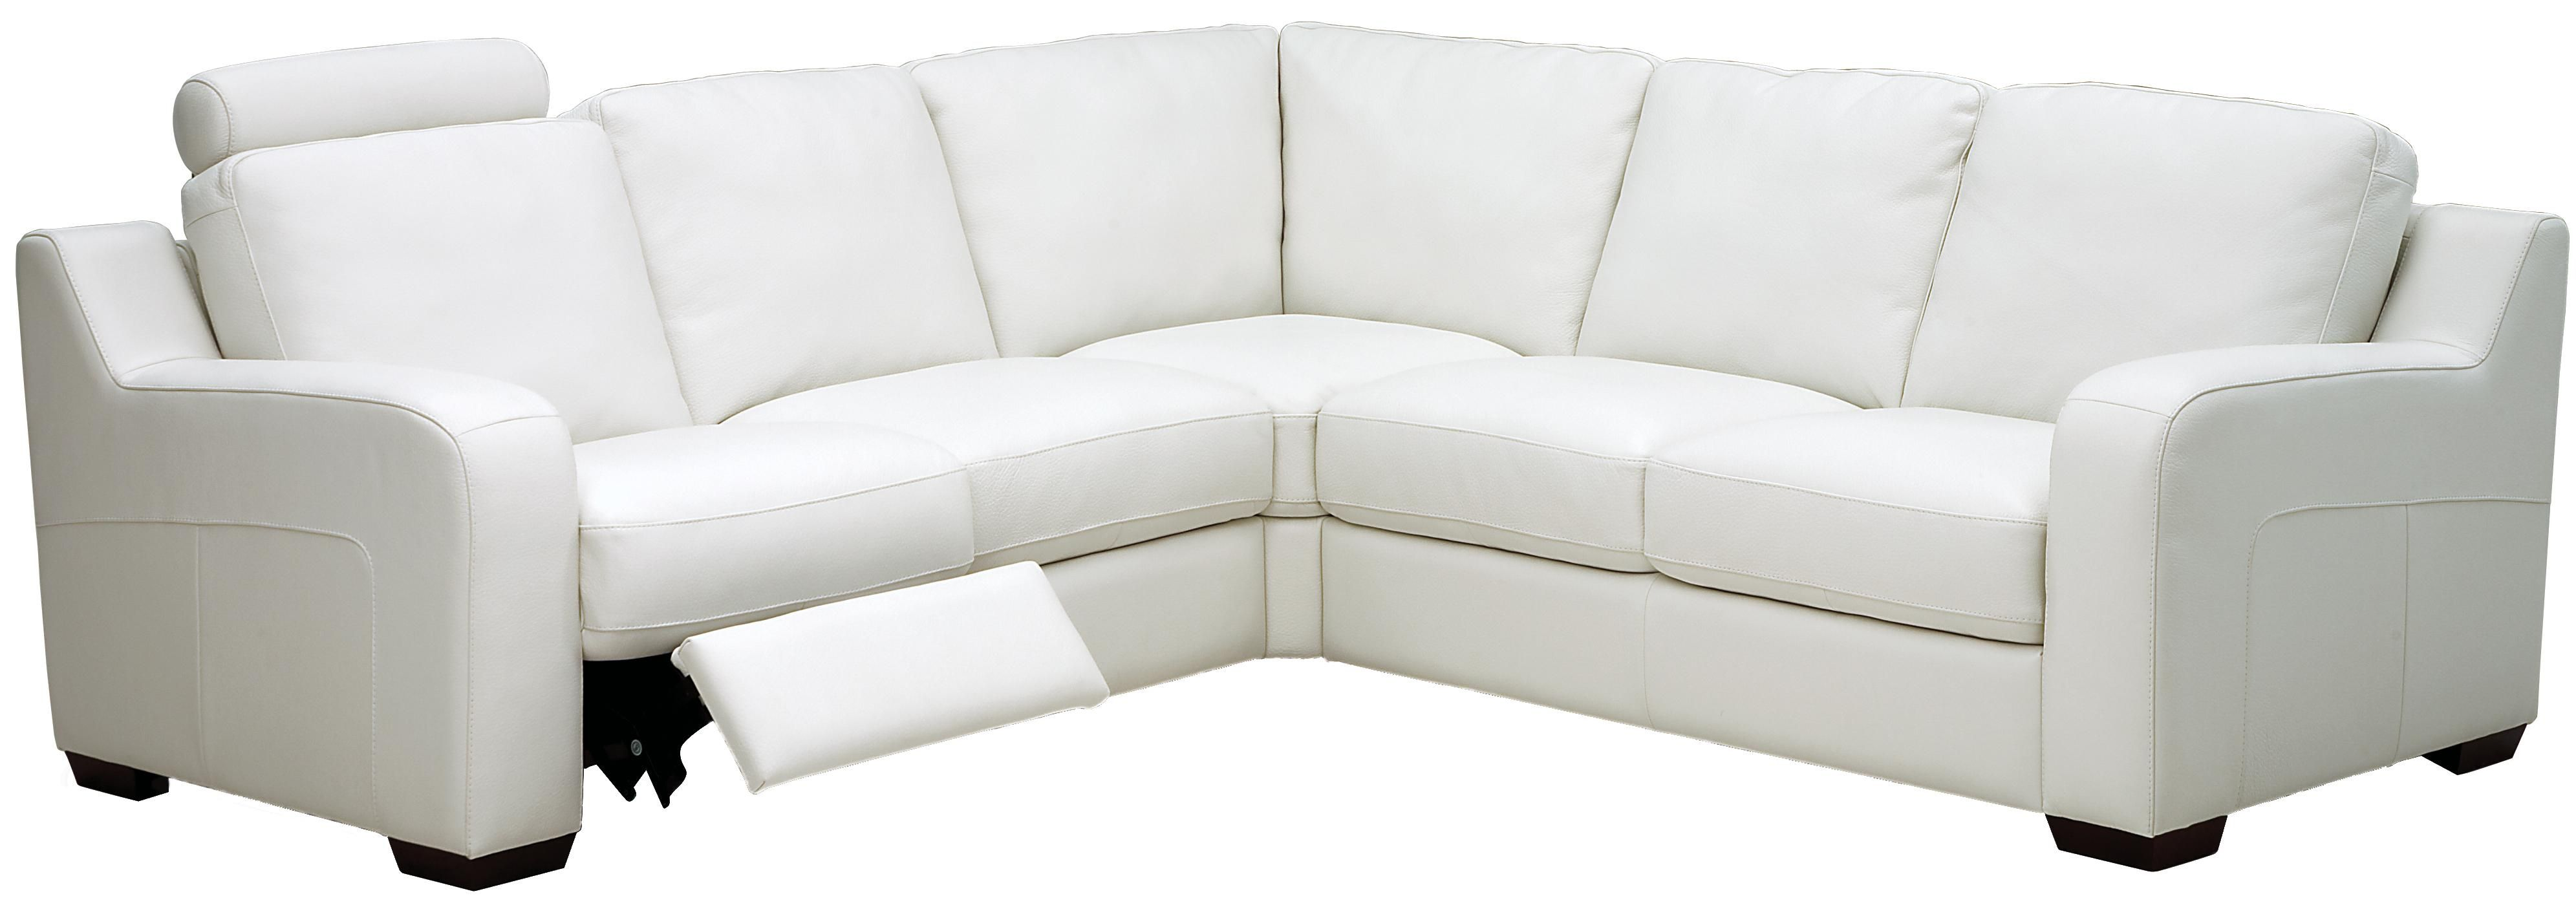 pause modern reclining sectional sofa by palliser u sofaer laeder flex close to right